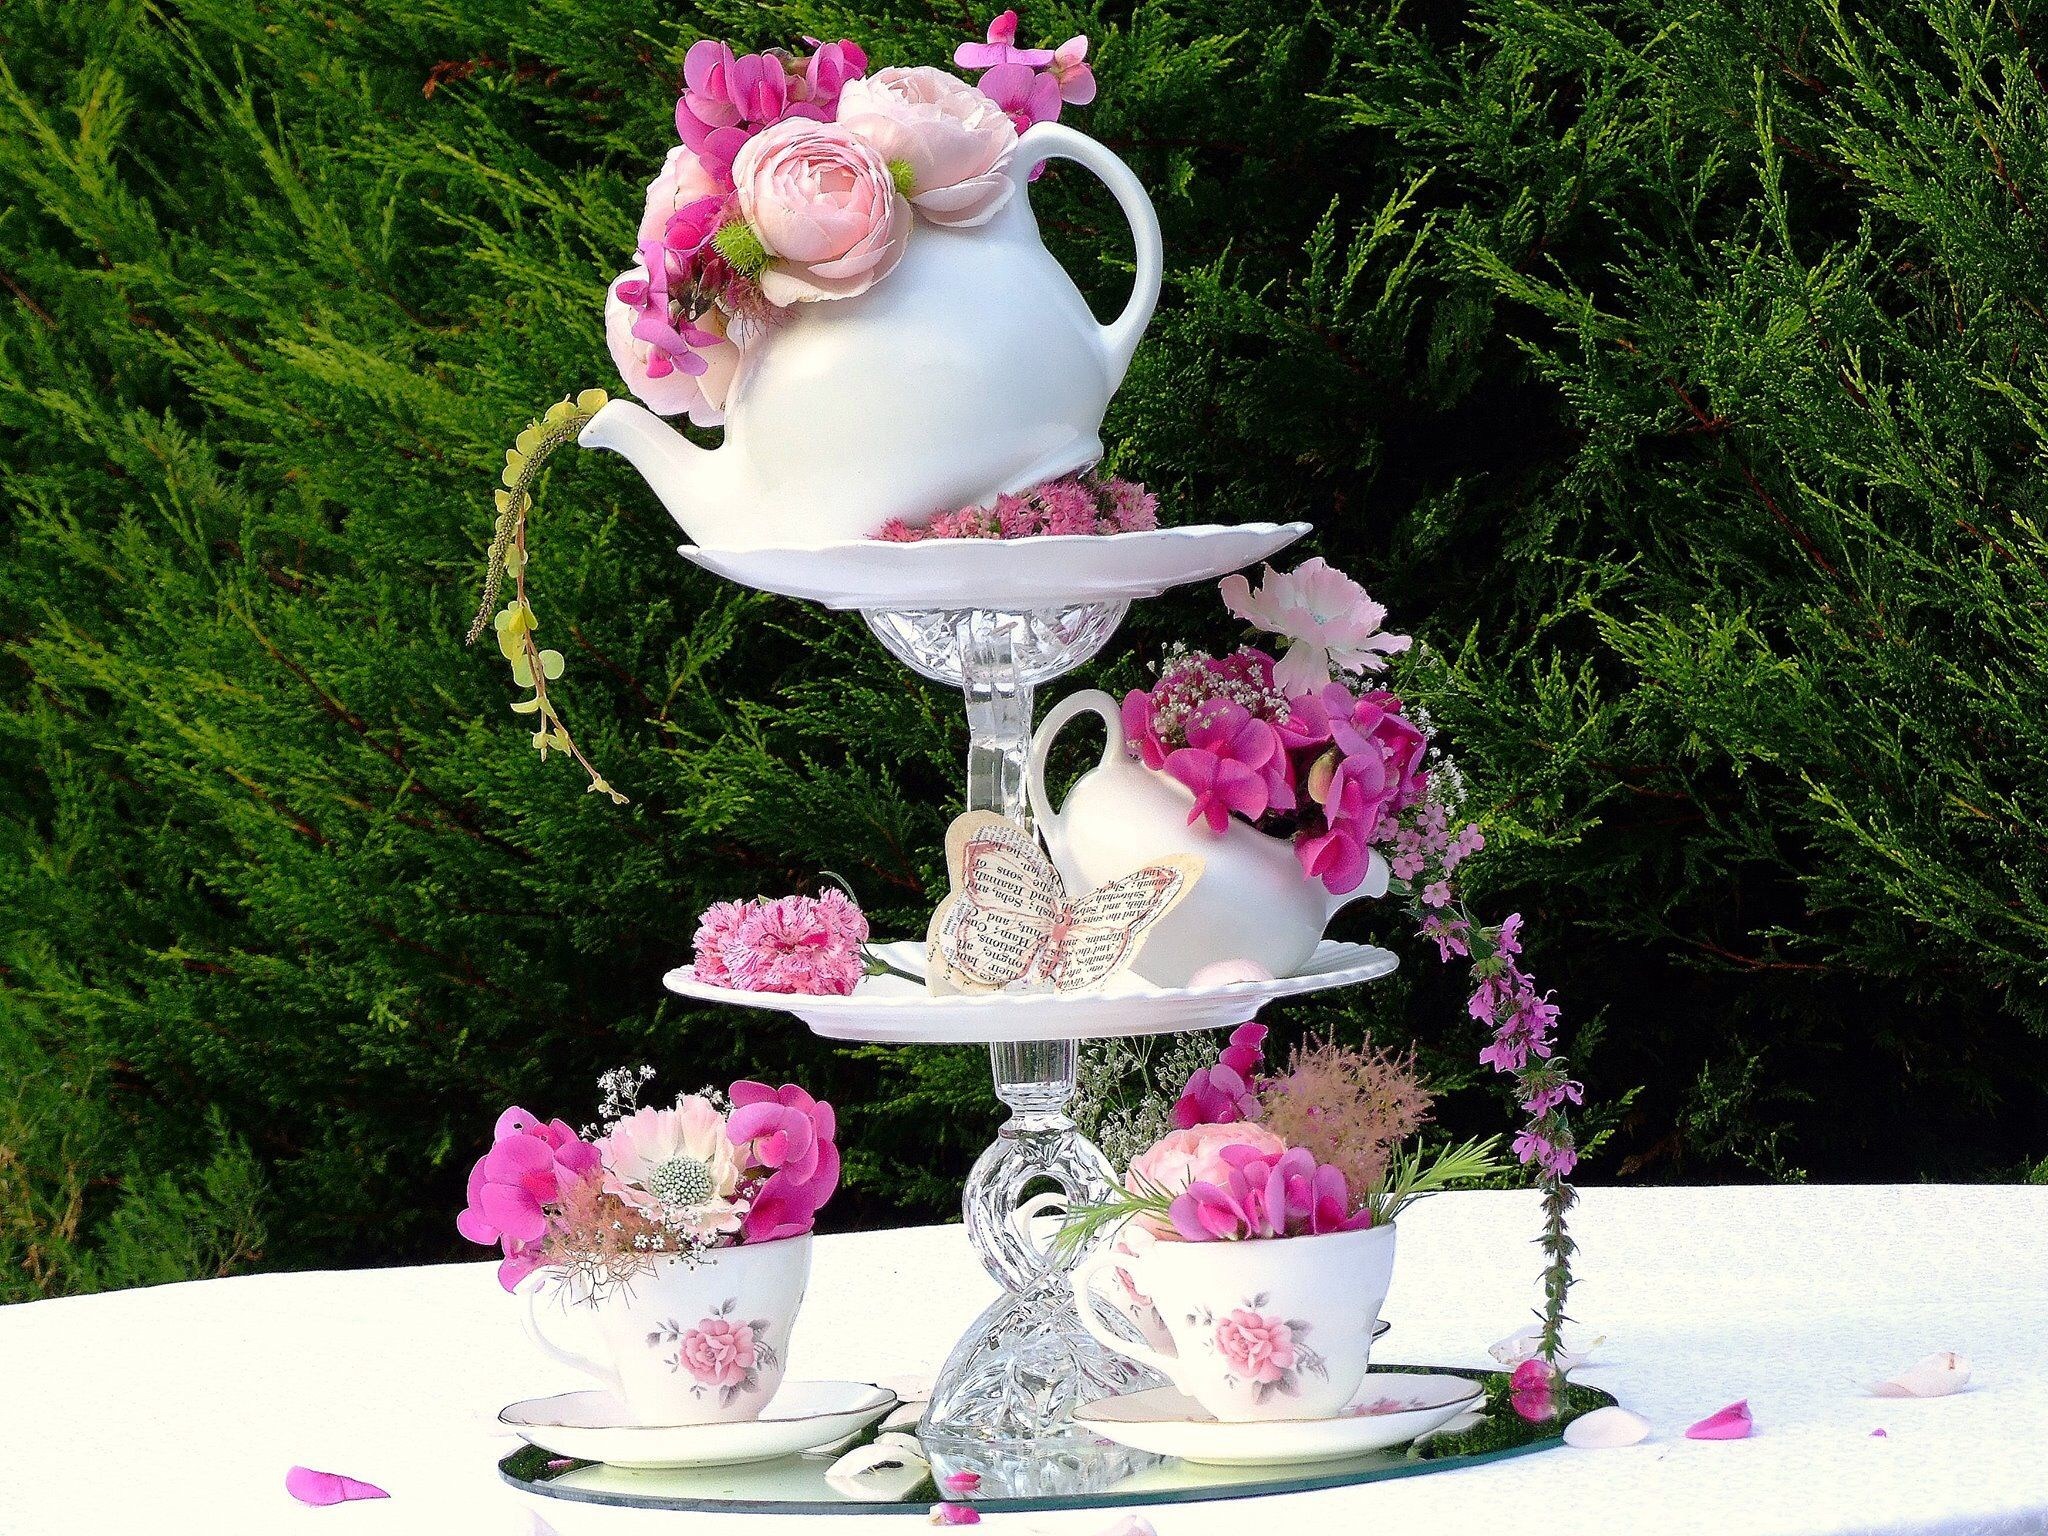 Topsy Turvy Wedding Centre Piece  From Sweetpea And Ivy. Alice In Wonderland,  Mad